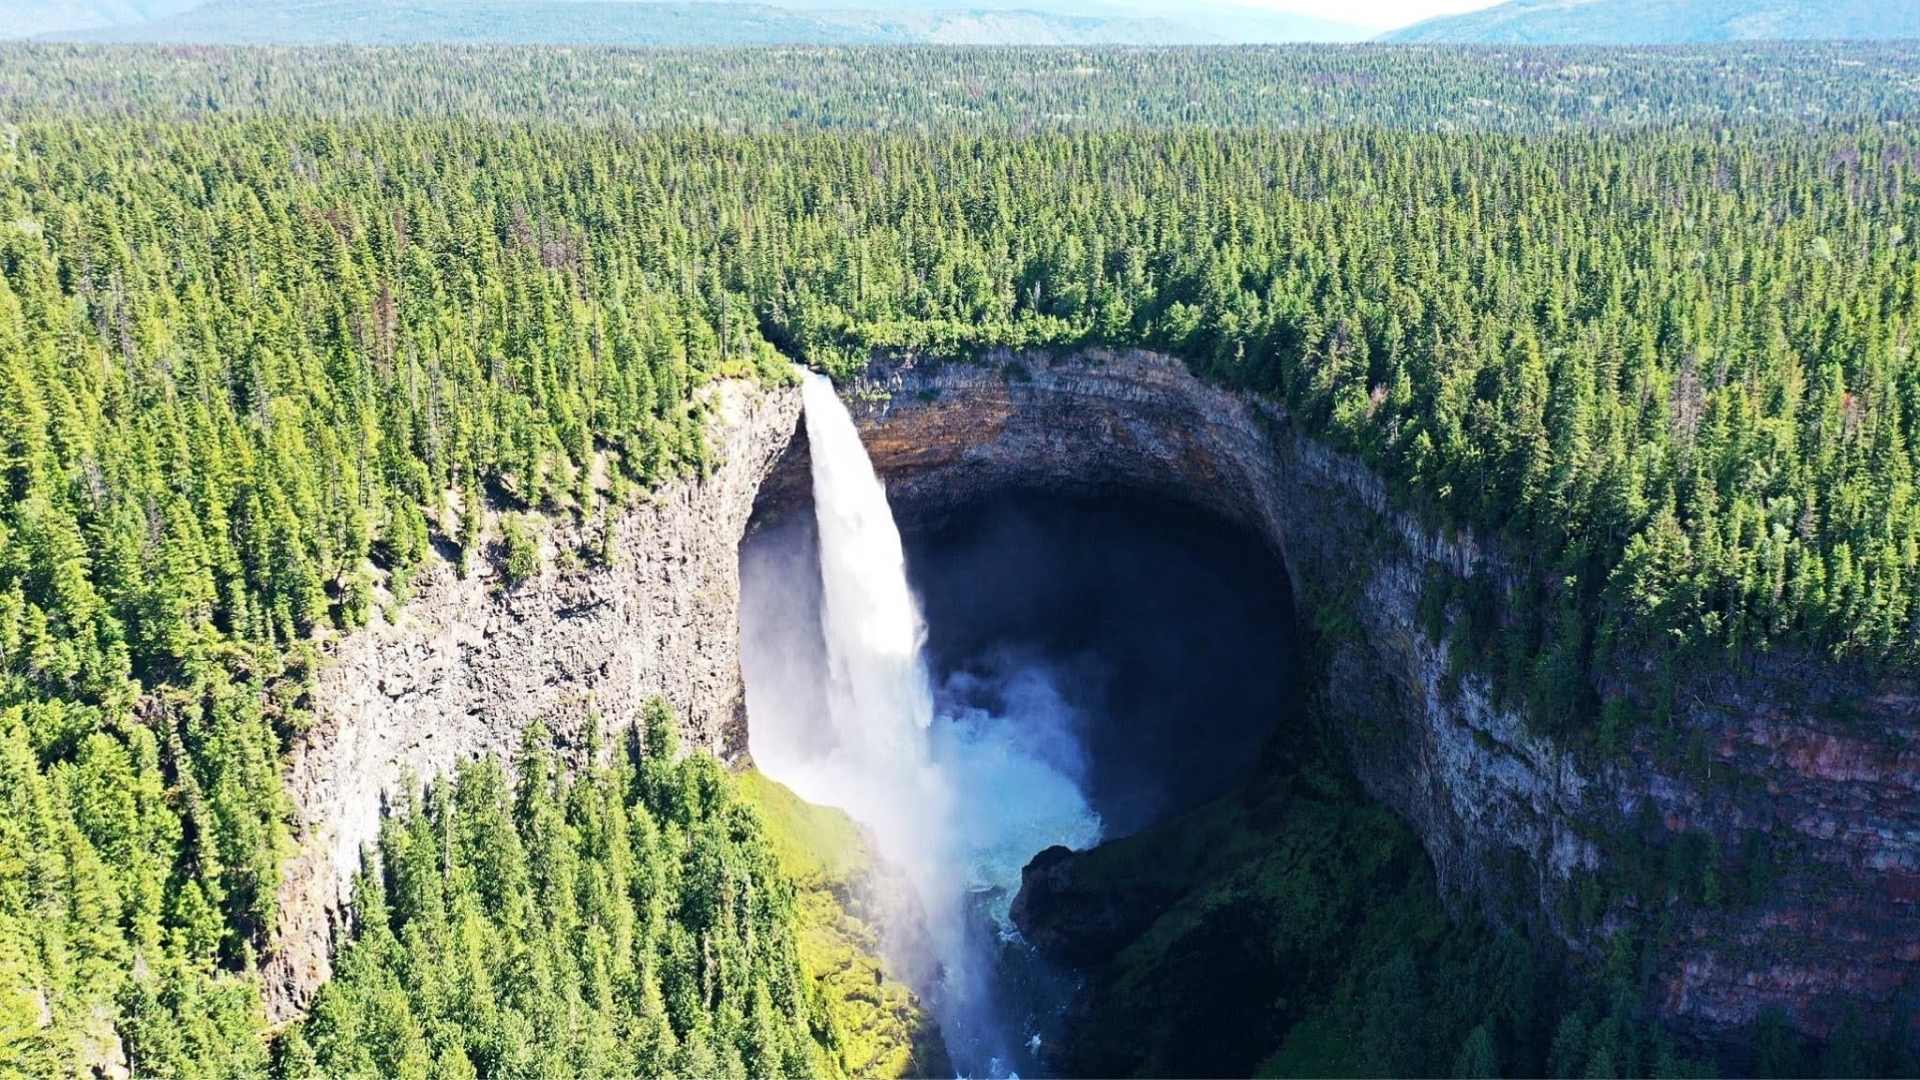 Helmcken Falls Canada beautiful waterfalls